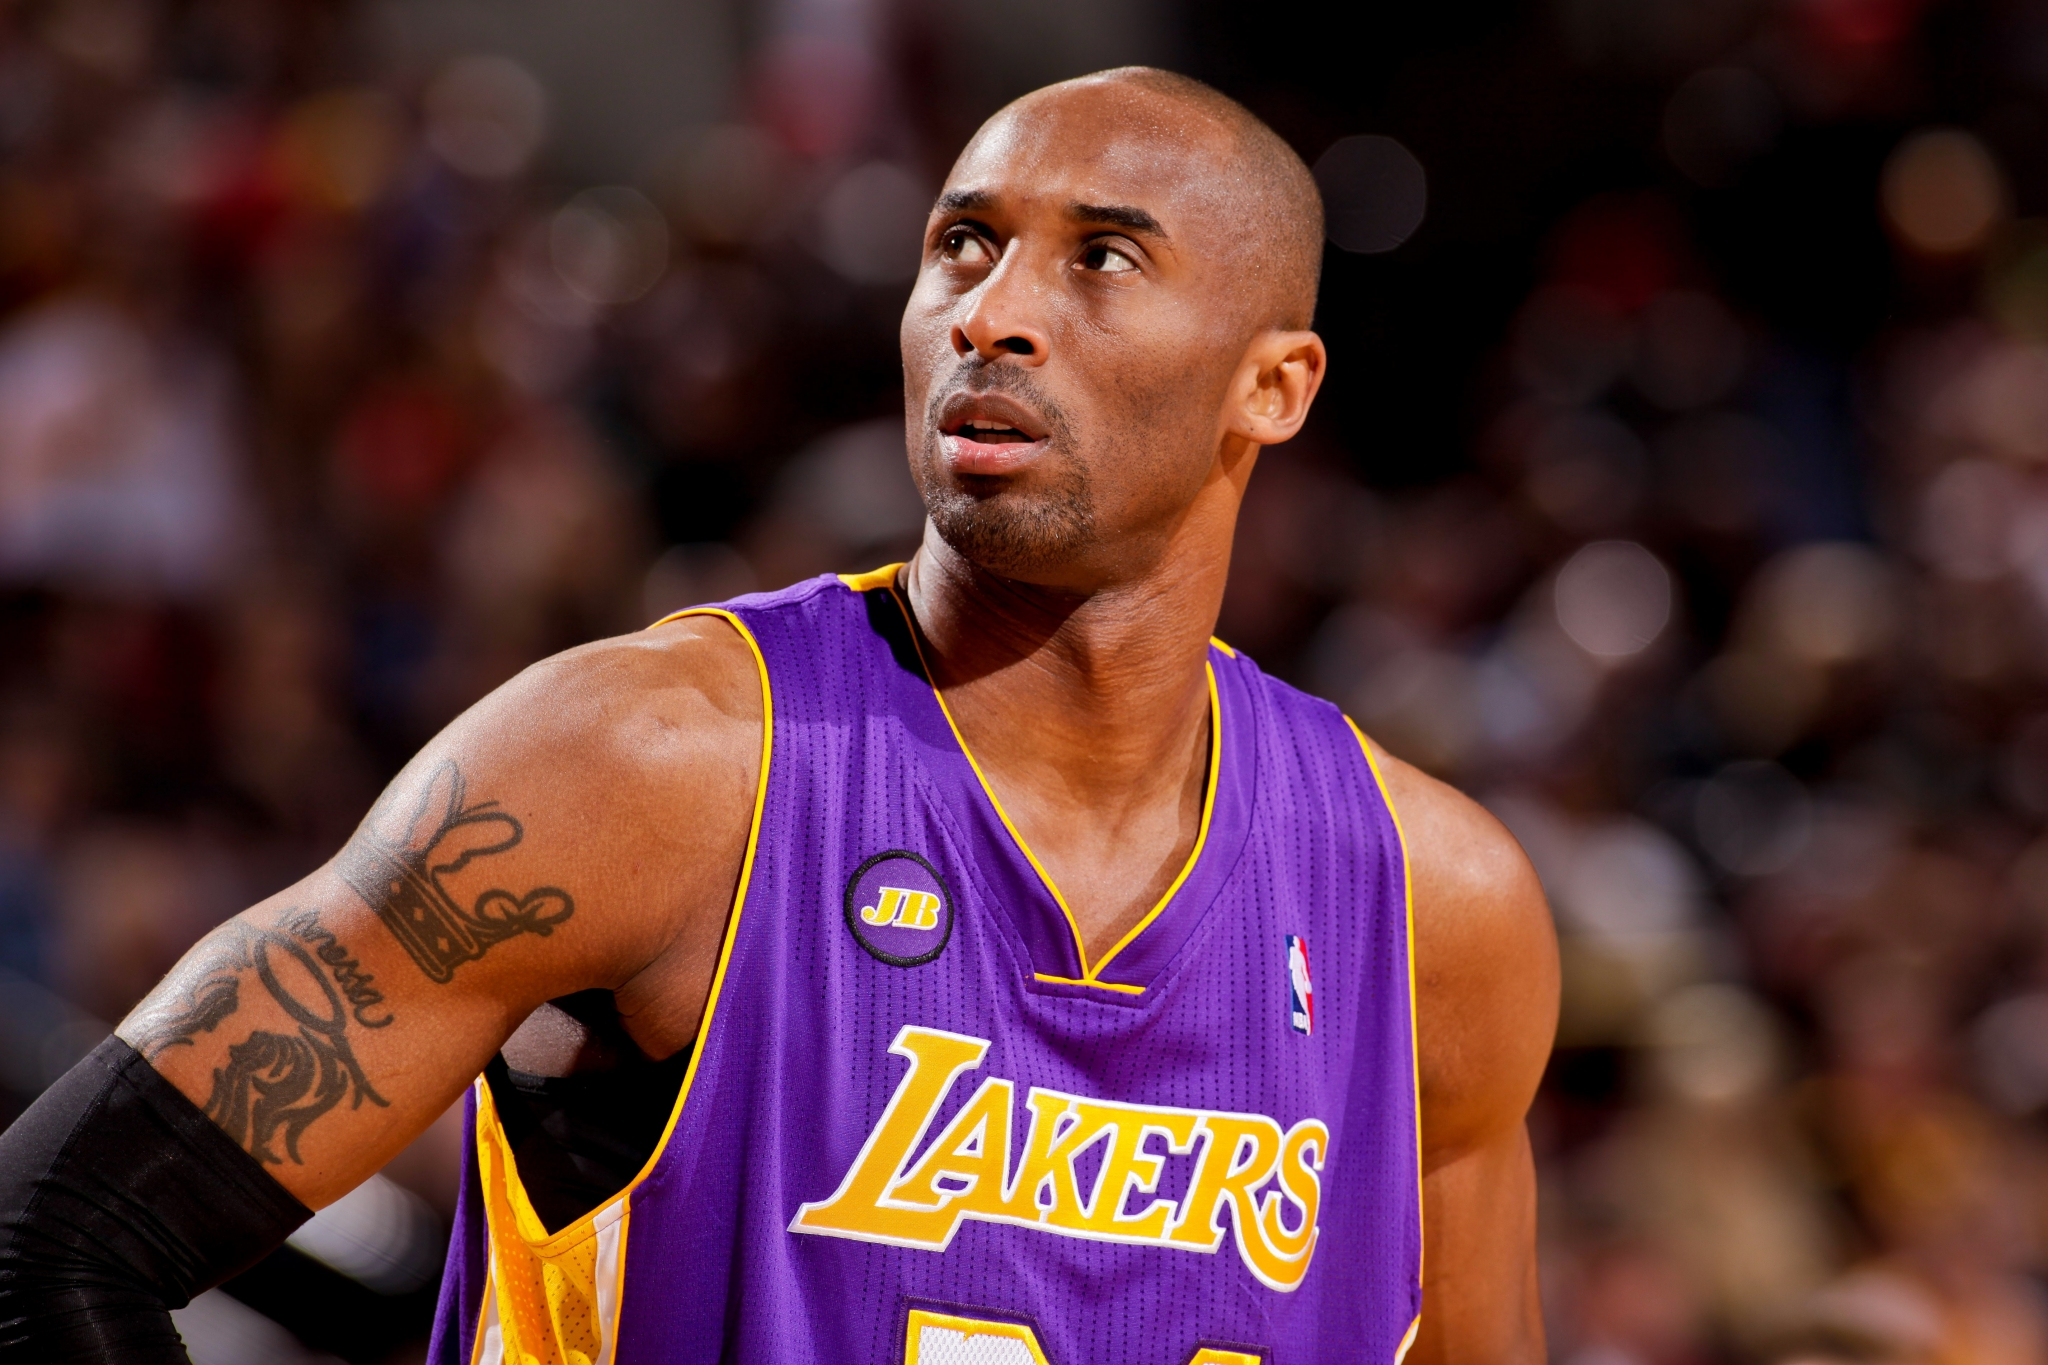 kobe bryant wallpaper pictures hd 63792